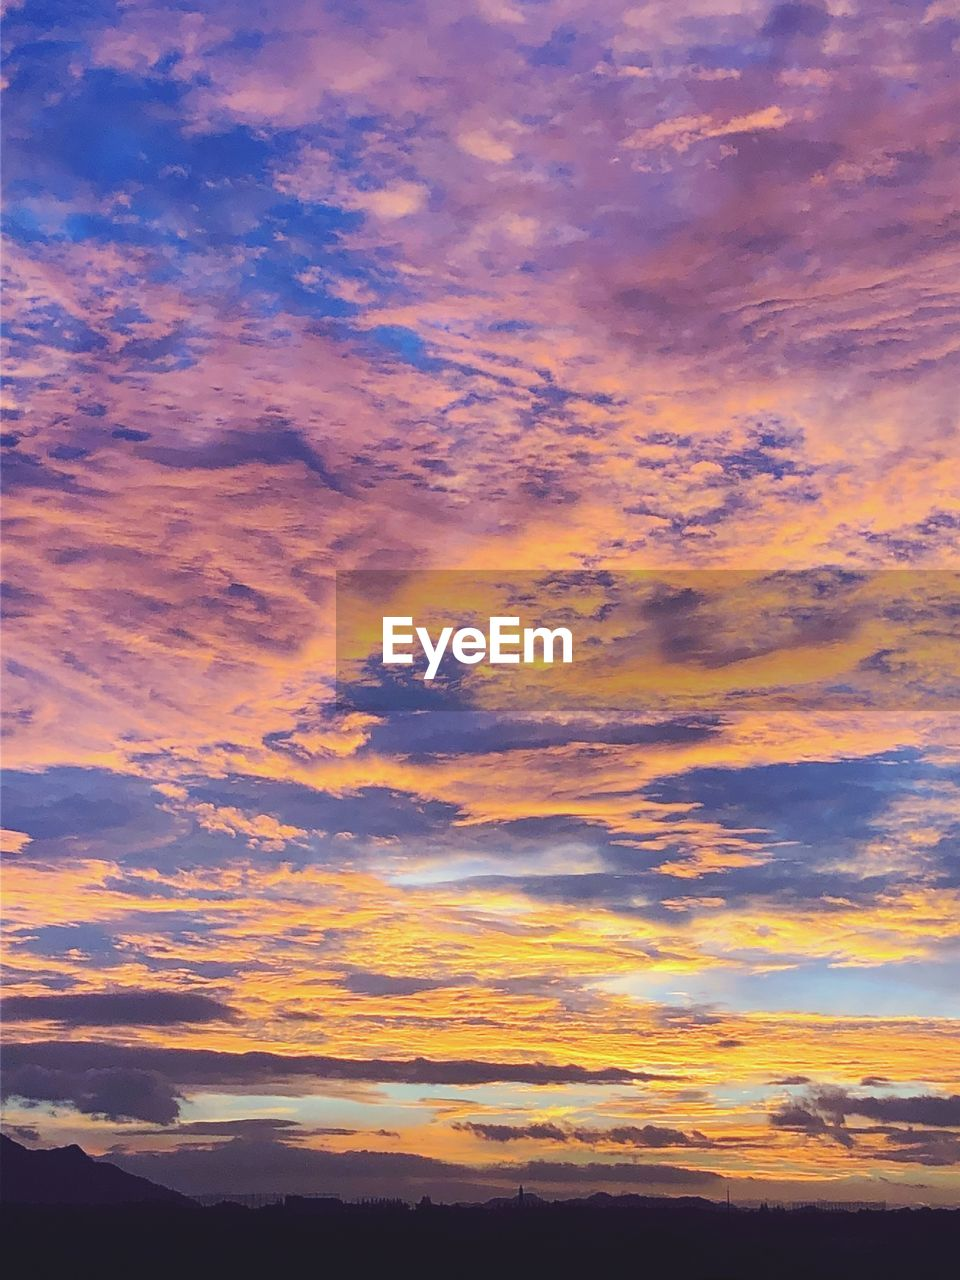 cloud - sky, sky, sunset, beauty in nature, scenics - nature, tranquility, orange color, tranquil scene, no people, dramatic sky, idyllic, nature, low angle view, outdoors, backgrounds, silhouette, cloudscape, awe, atmospheric mood, romantic sky, meteorology